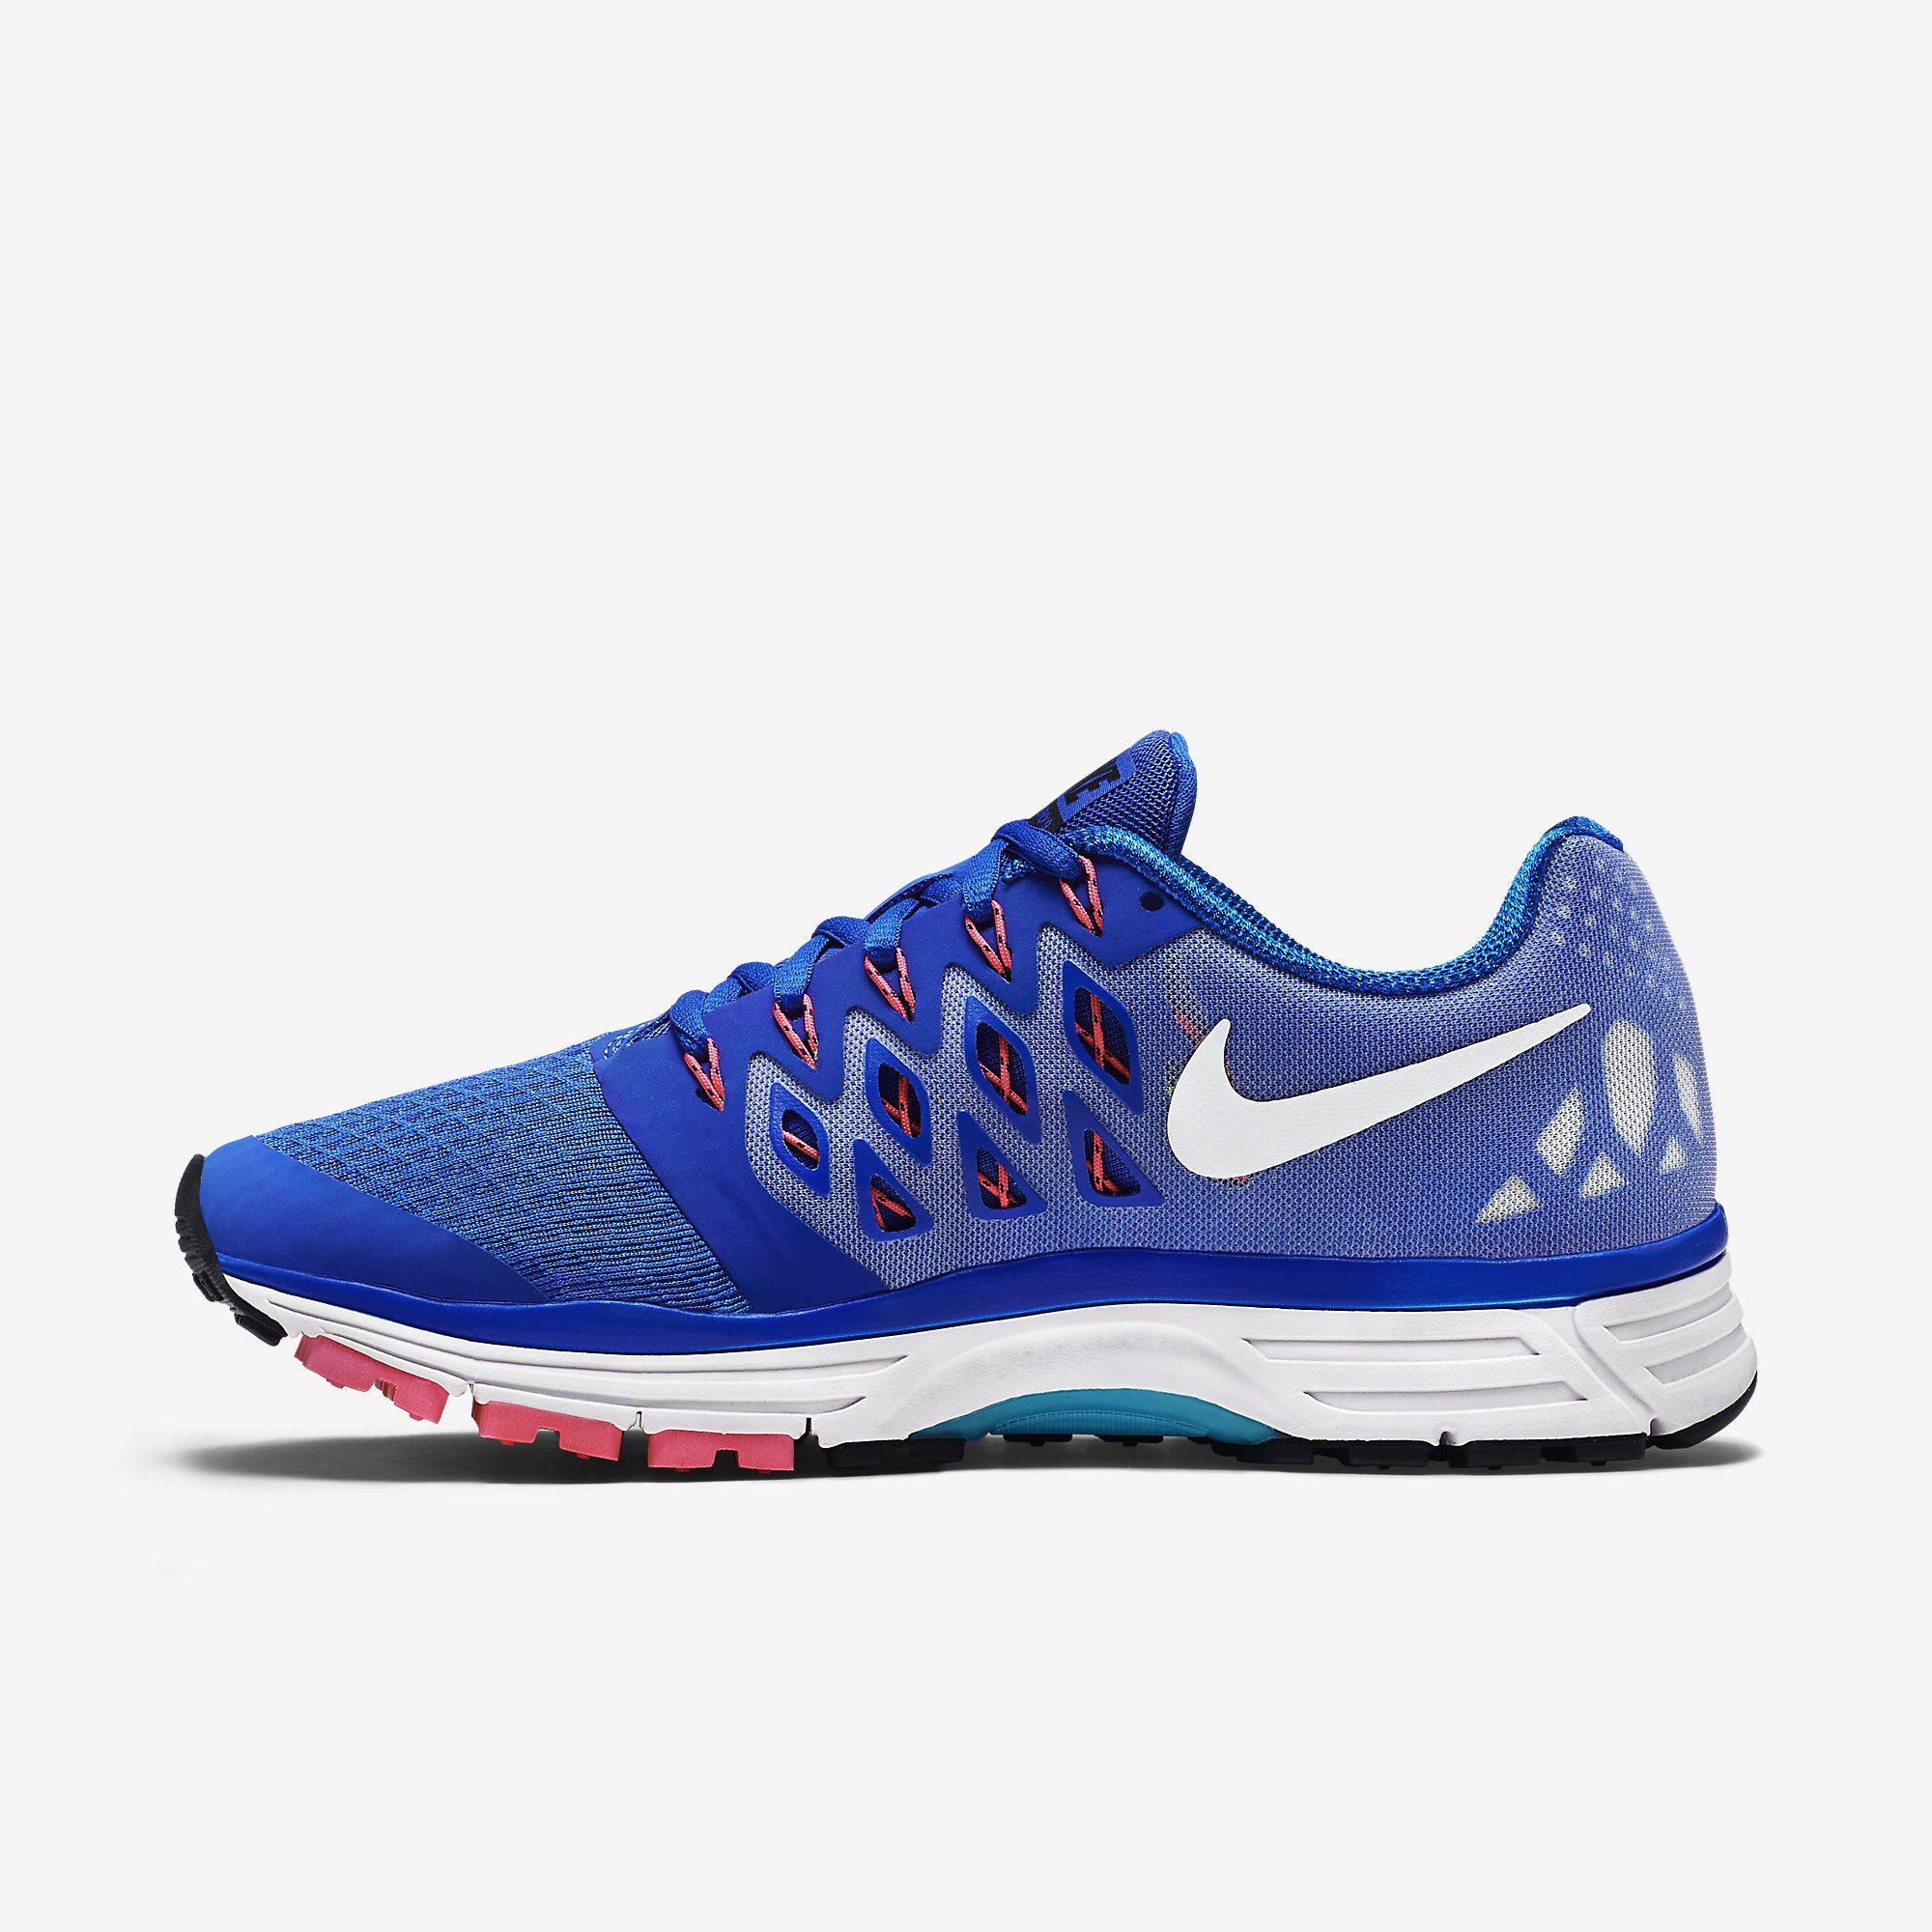 4c301a7e28dc Nike Womens Zoom Vomero 9 Running Shoes - Lyon Blue White Pink Pow ...